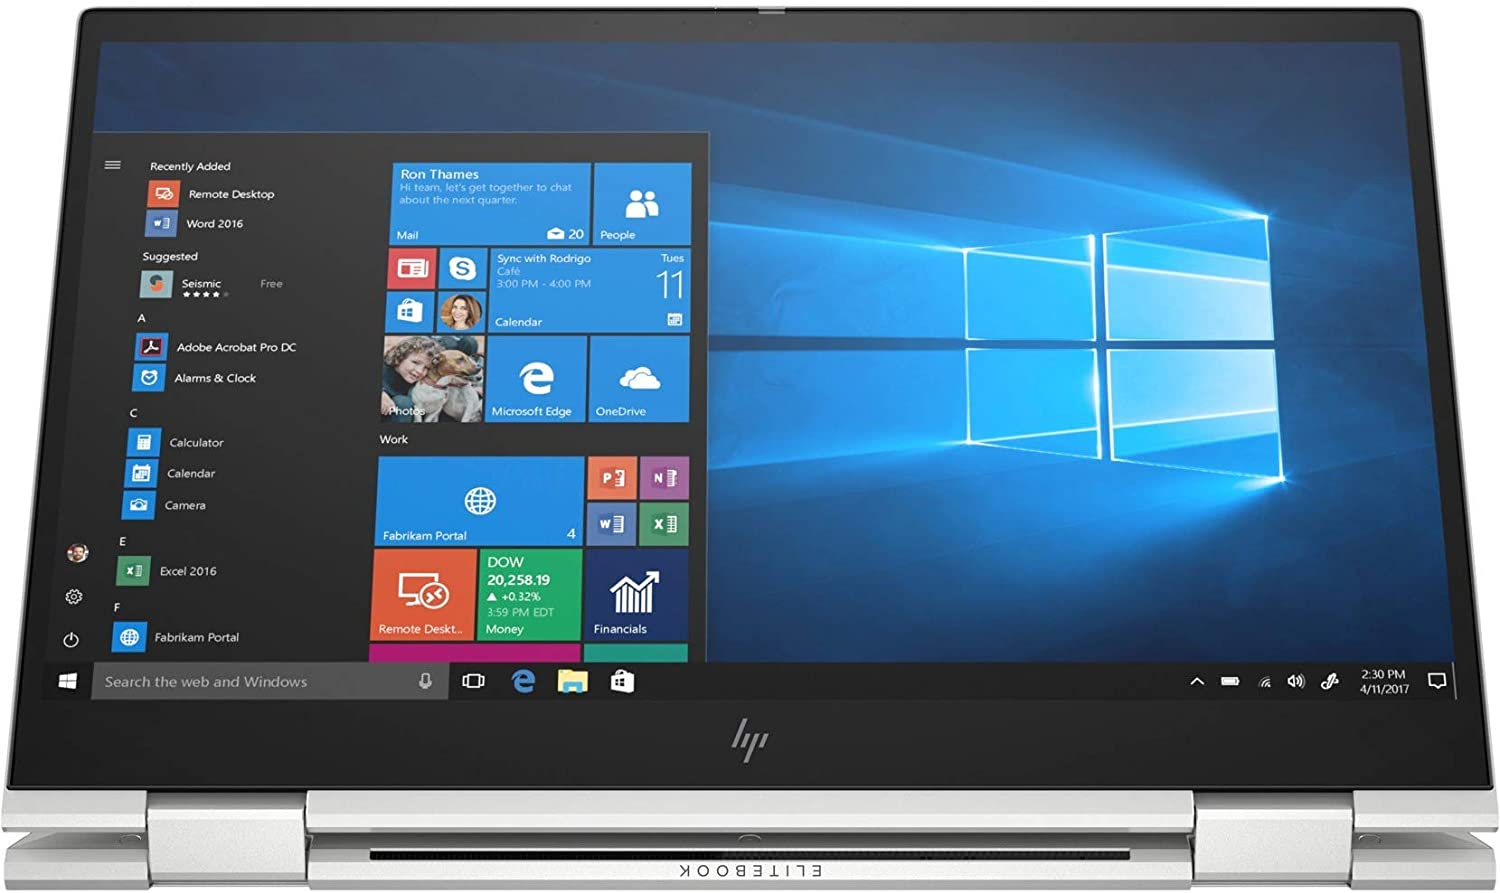 Laptop HP Elitebook 840 G8 (3G0Z7PA)/ Intel Core i7-1165G7 (up to 4.70 Ghz, 12MB)/ 8GB DDR4/ 512GB SSD/ Intel Iris Xe Graphics / 14.0 inch FHD AG/ 3Cell/ Win 10 Pro/ 3Yrs